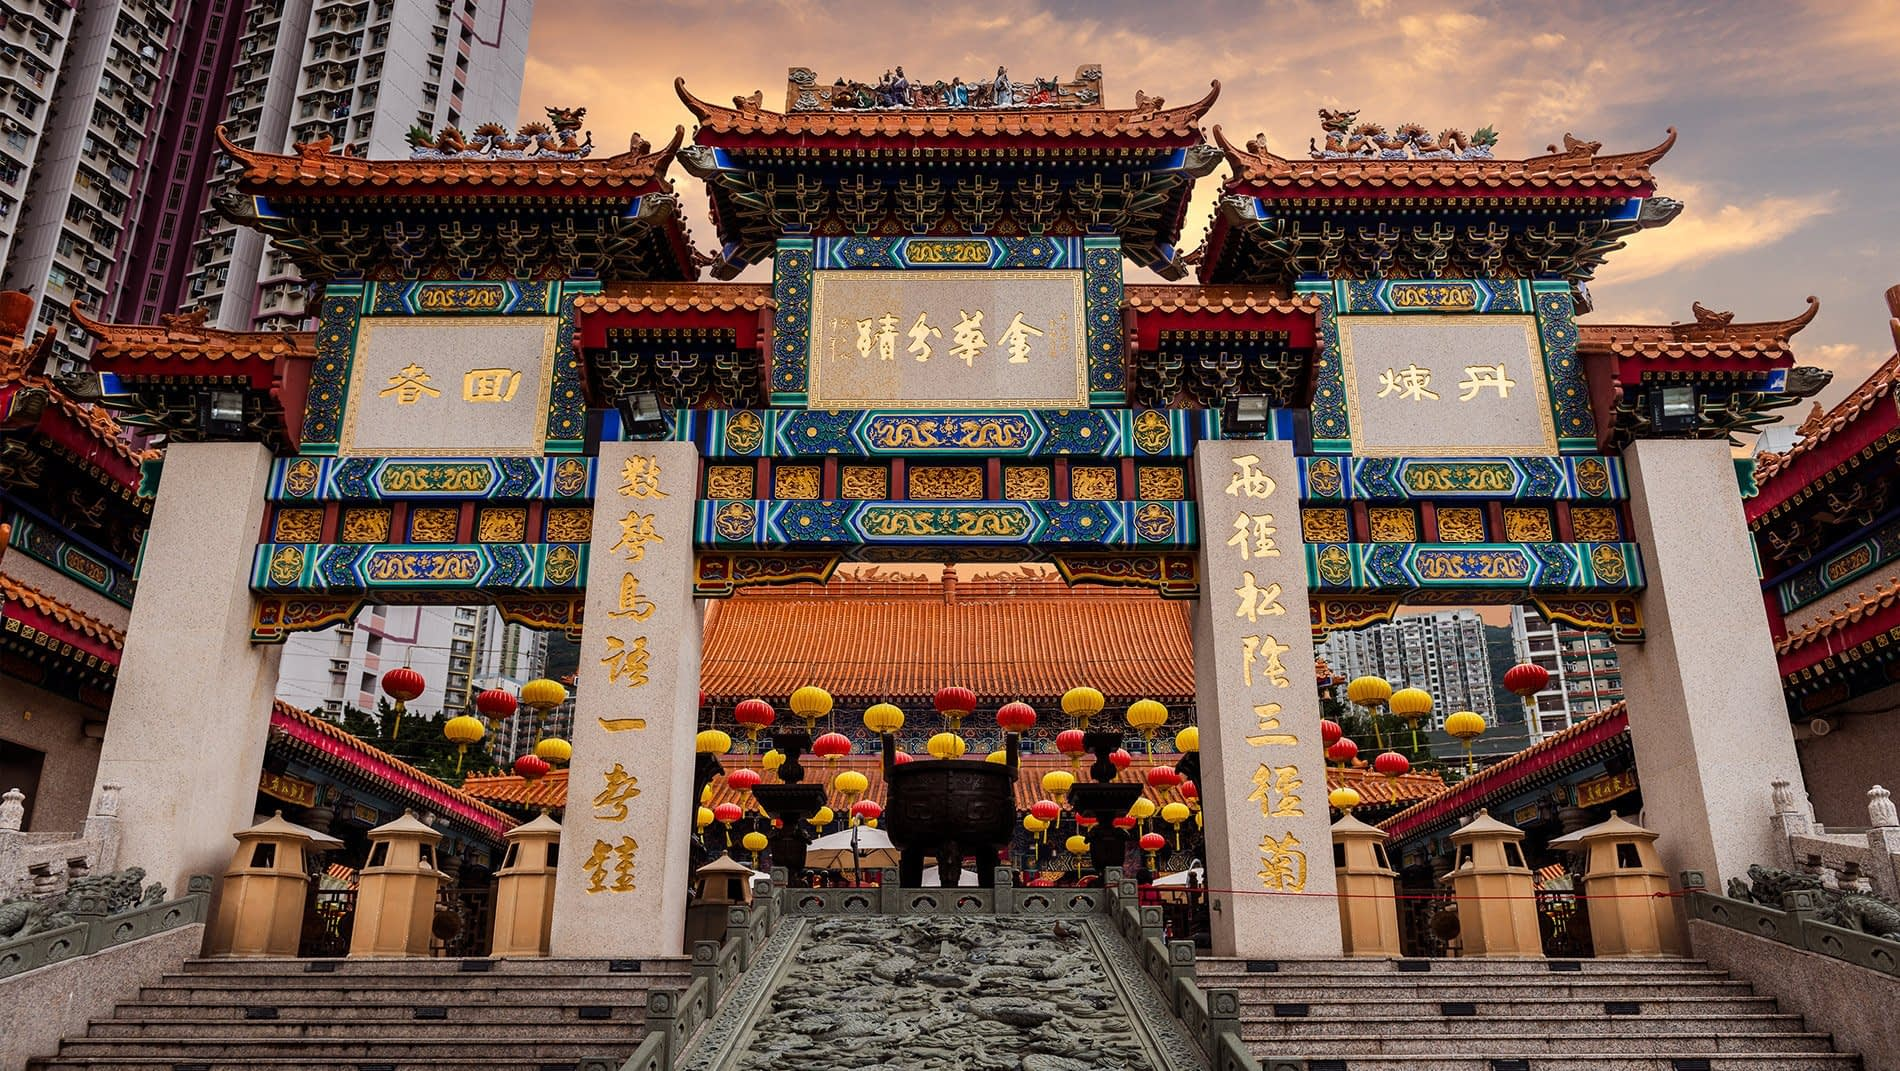 Wong Tai Sin Temple~During the rapid rise of Hong Kong in the '50's and '60's, Wong Tai Sin cemented its place in the heart of locals and recent immigrants alike as the people's temple where prayers were answered whether placed to Buddhist, Confucian or Daoist divinities.